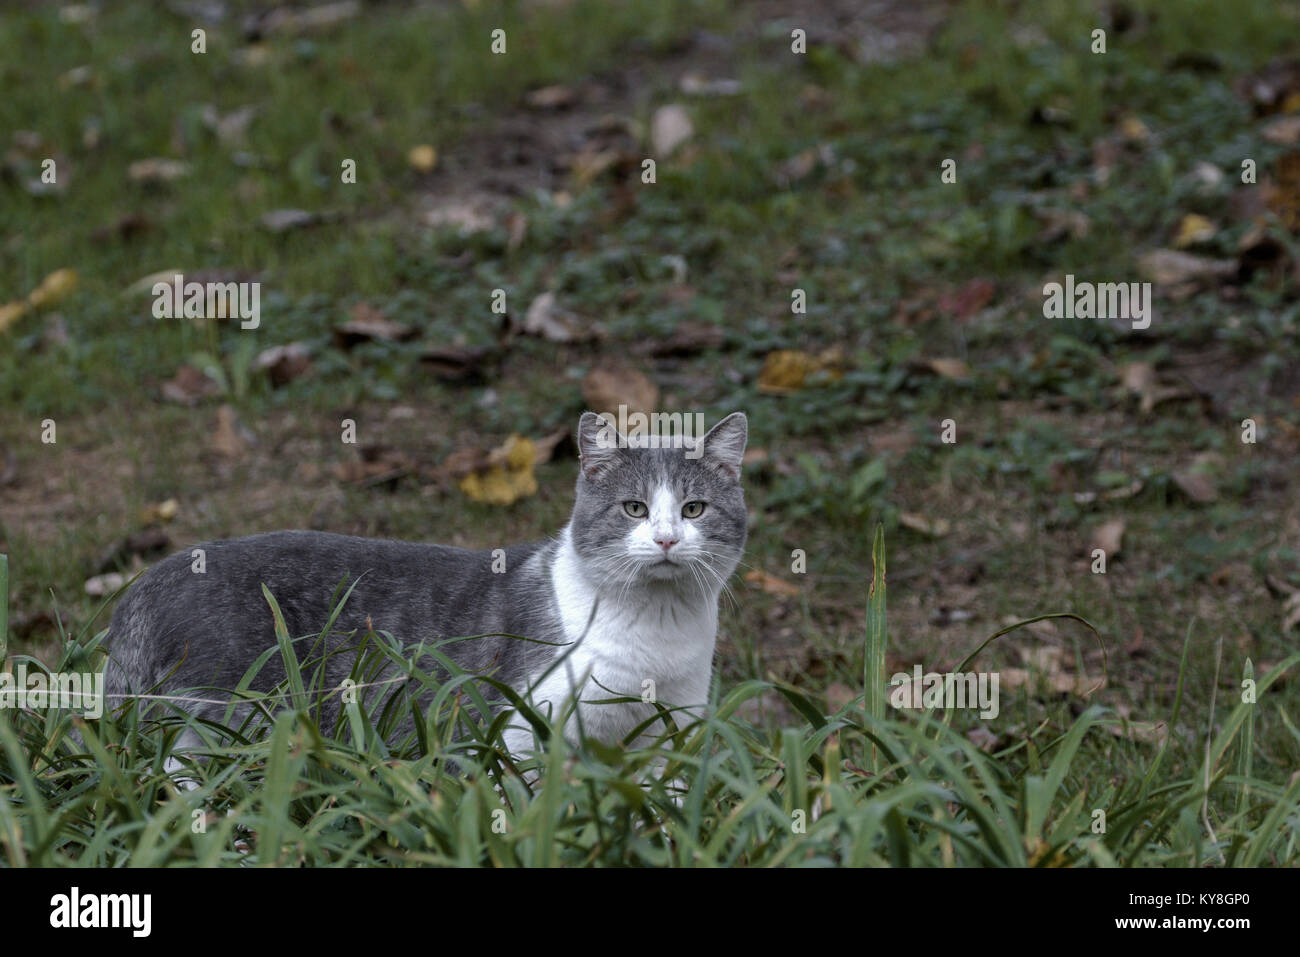 Feral Cat Hunting Stock Photos & Feral Cat Hunting Stock Images - Alamy